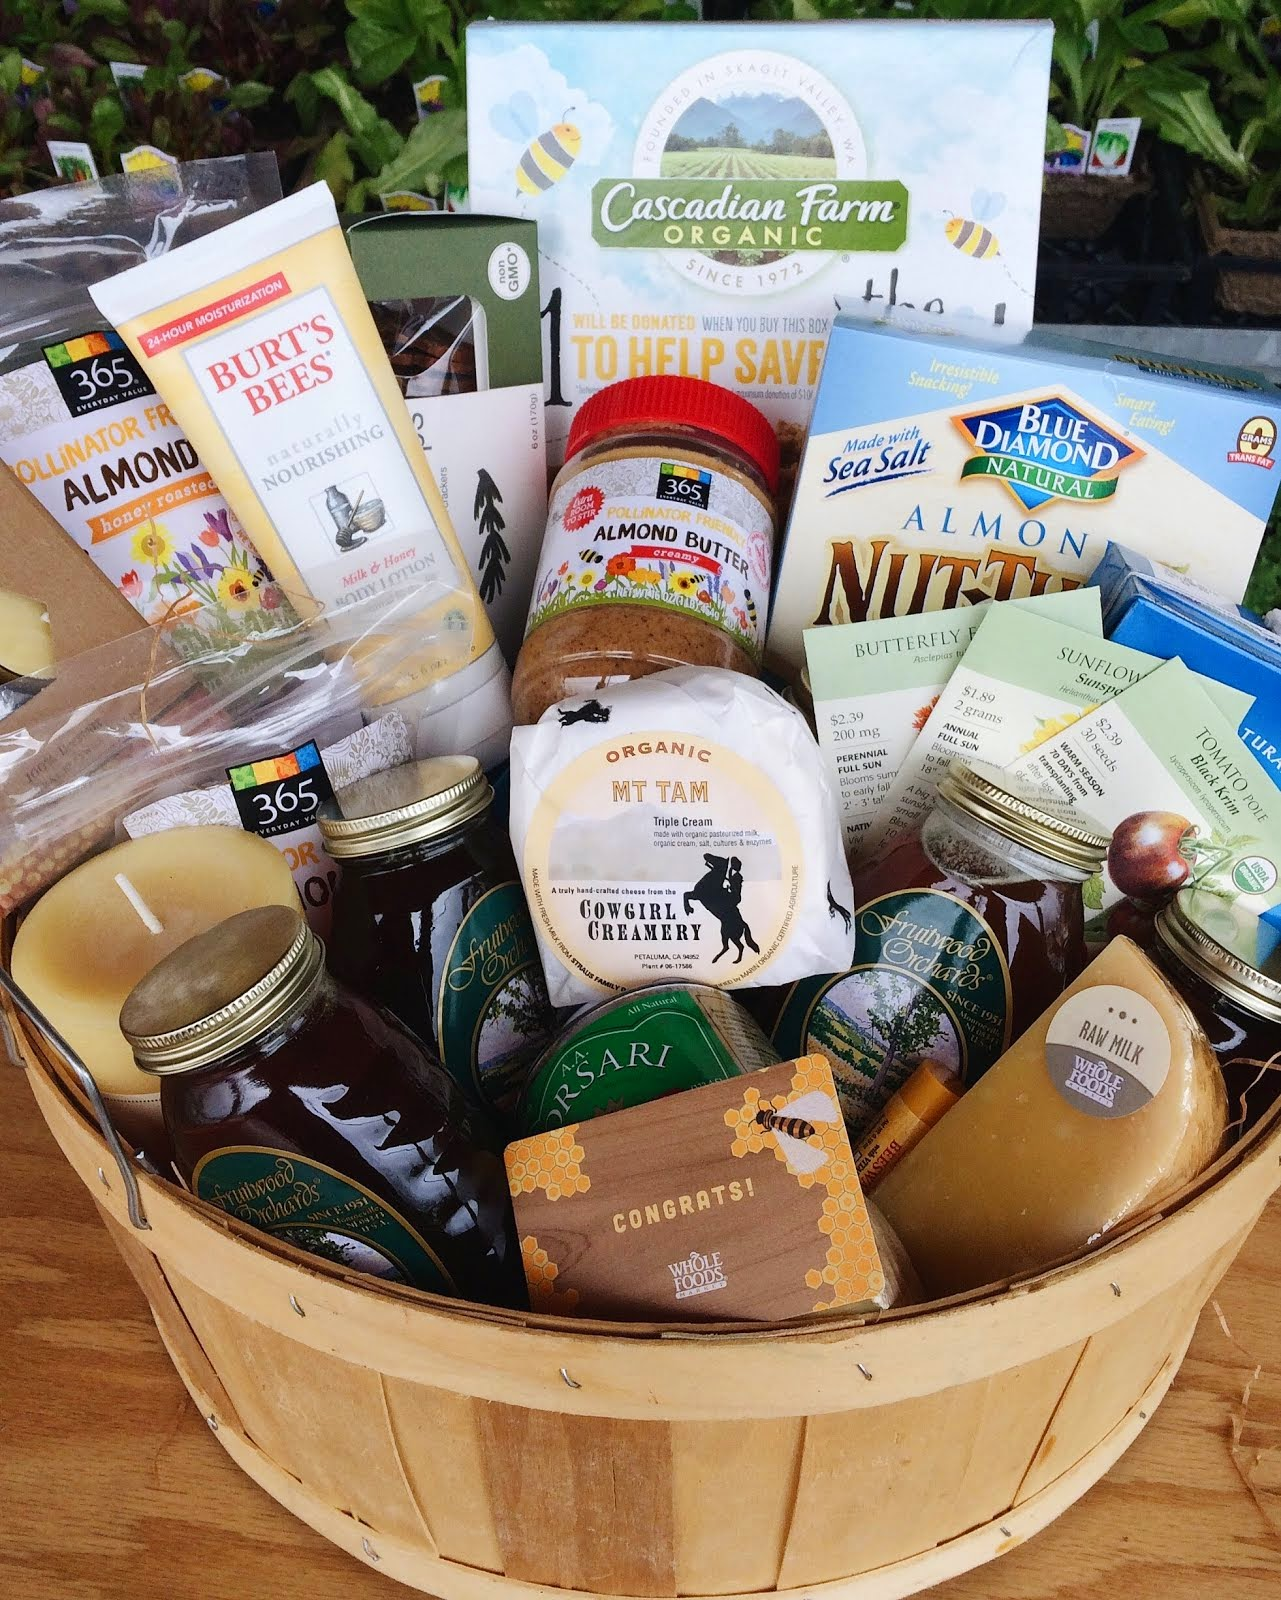 Whole Foods Market Gift Basket Giveaway $250 Value products and gift card